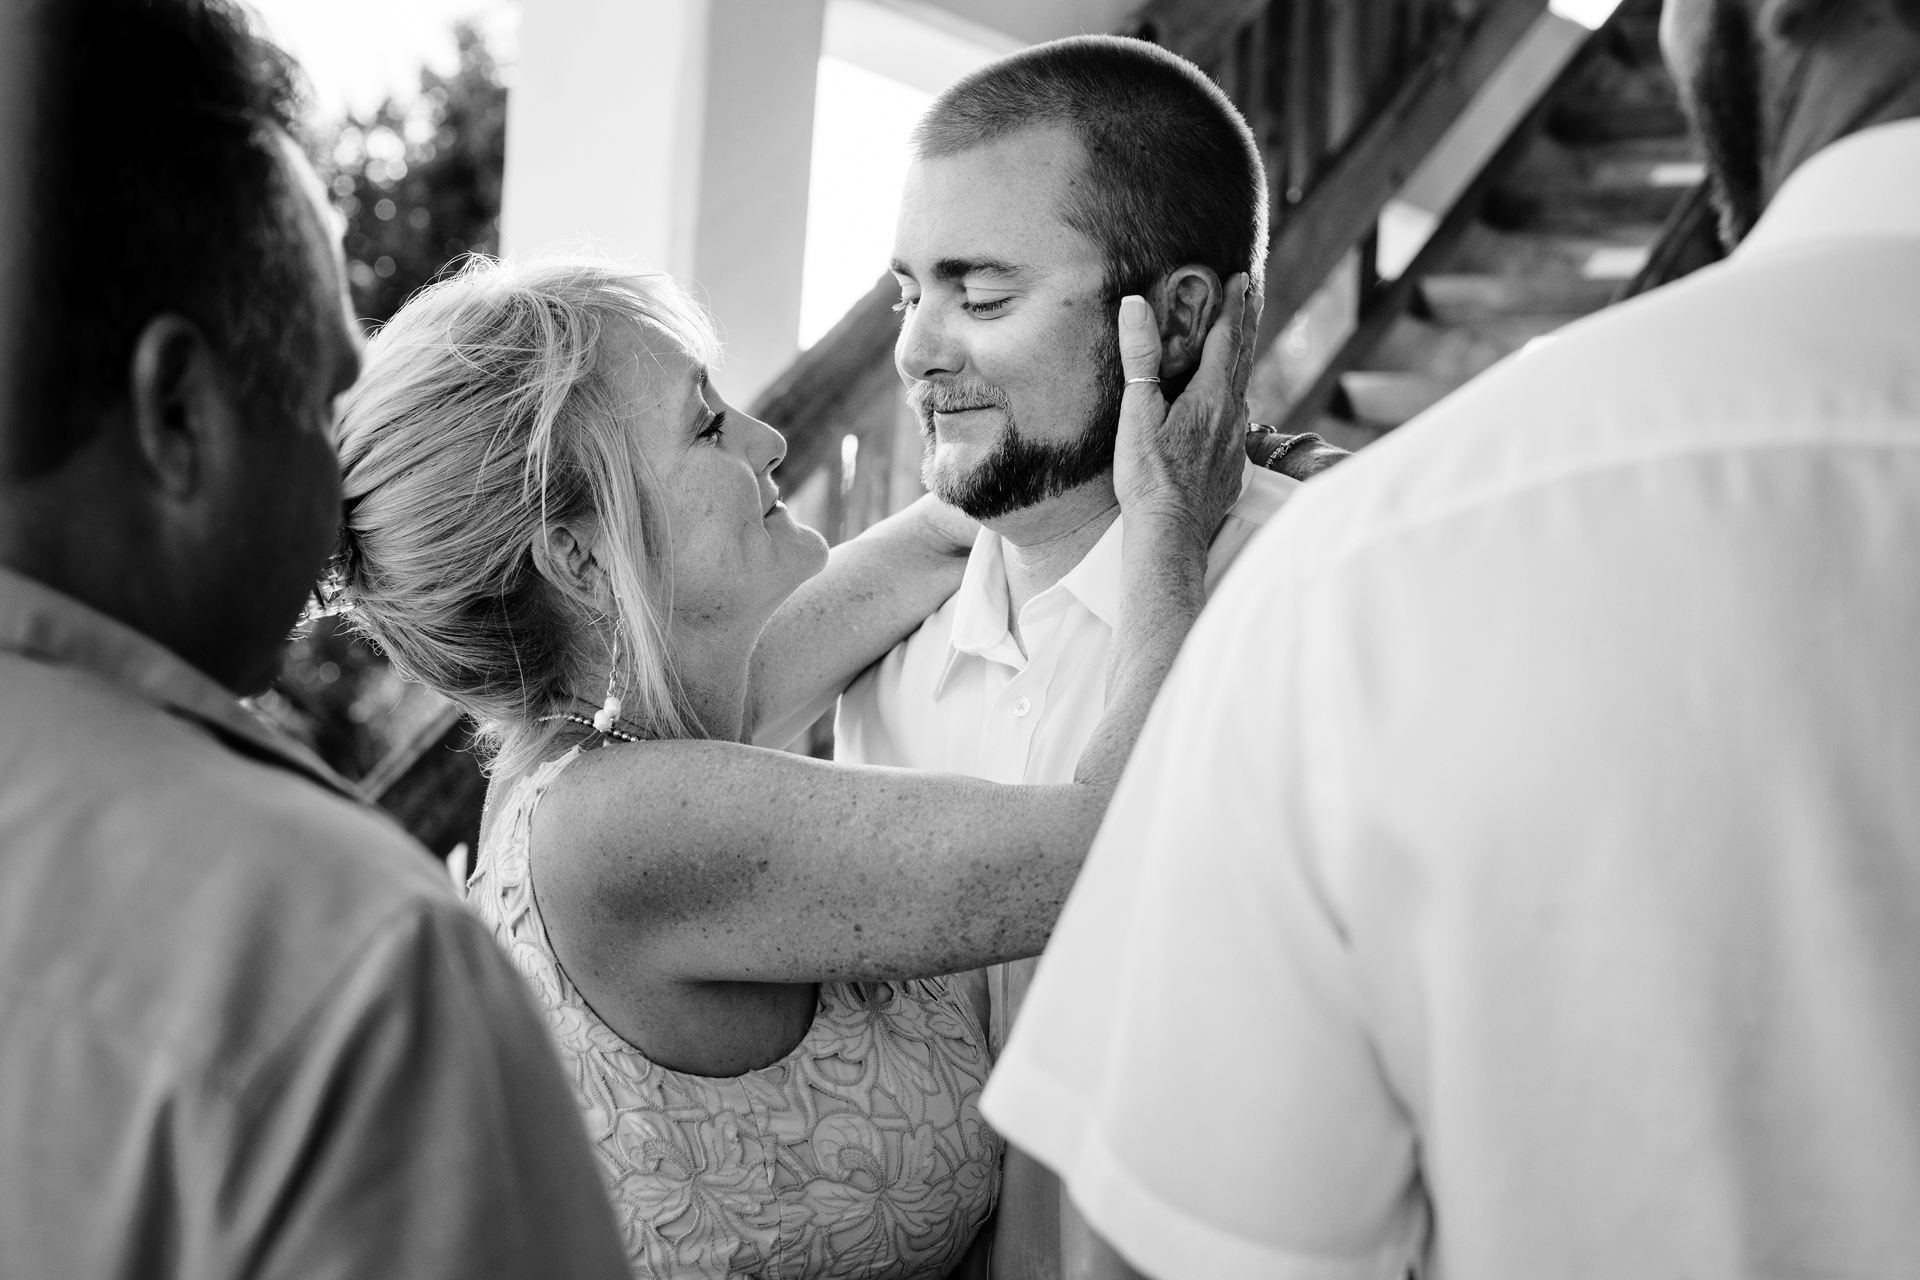 Florida Keys Elopement Photo - Groom Getting Hug Picture | The groom embraces his mother as she cups his cheeks